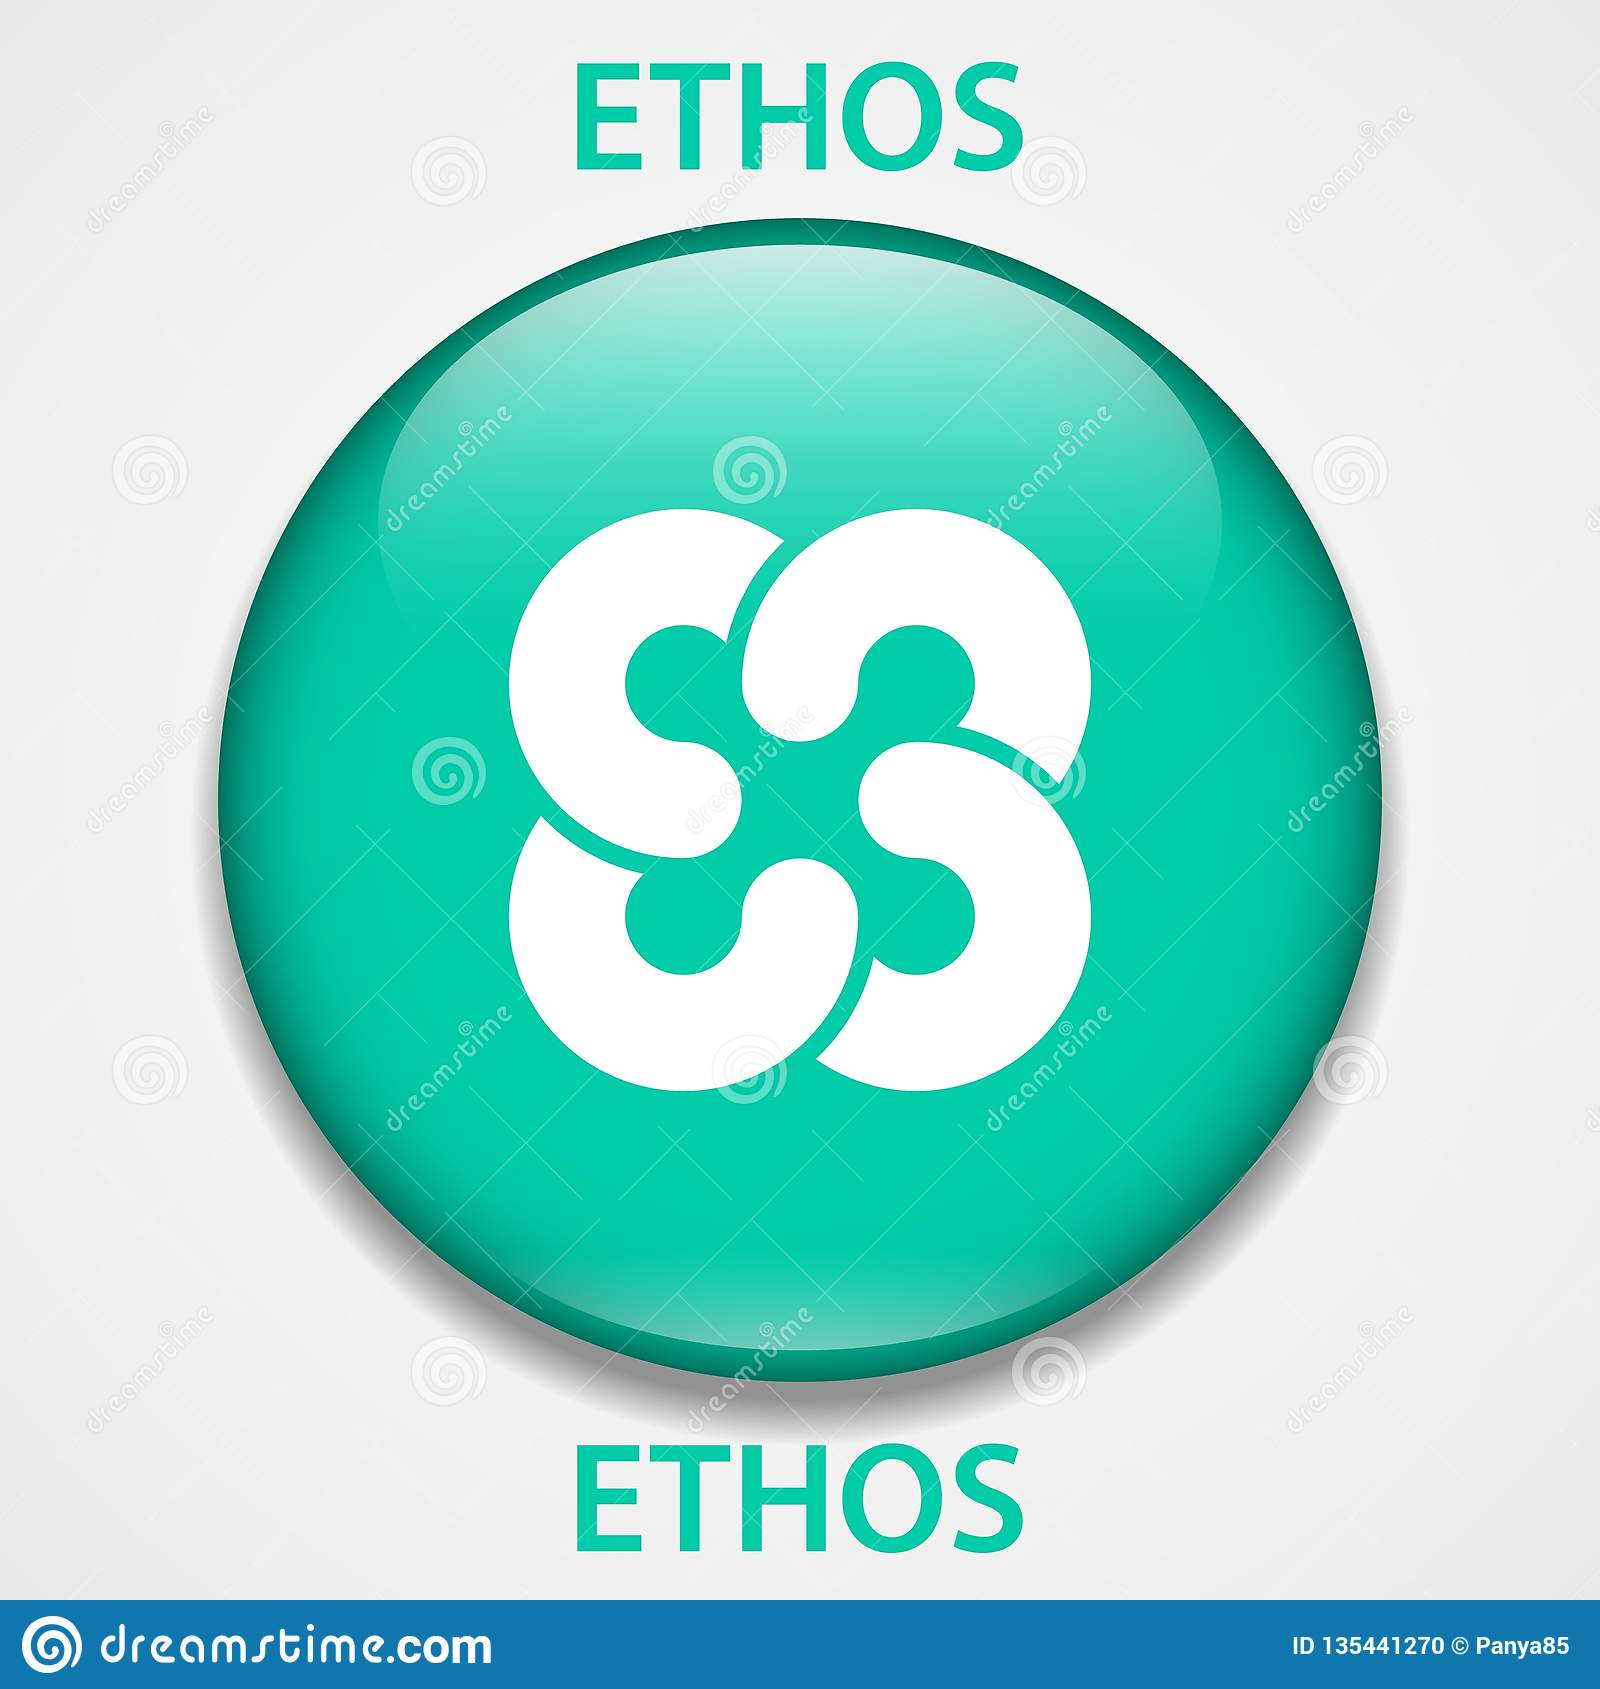 how to buy ethos cryptocurrency